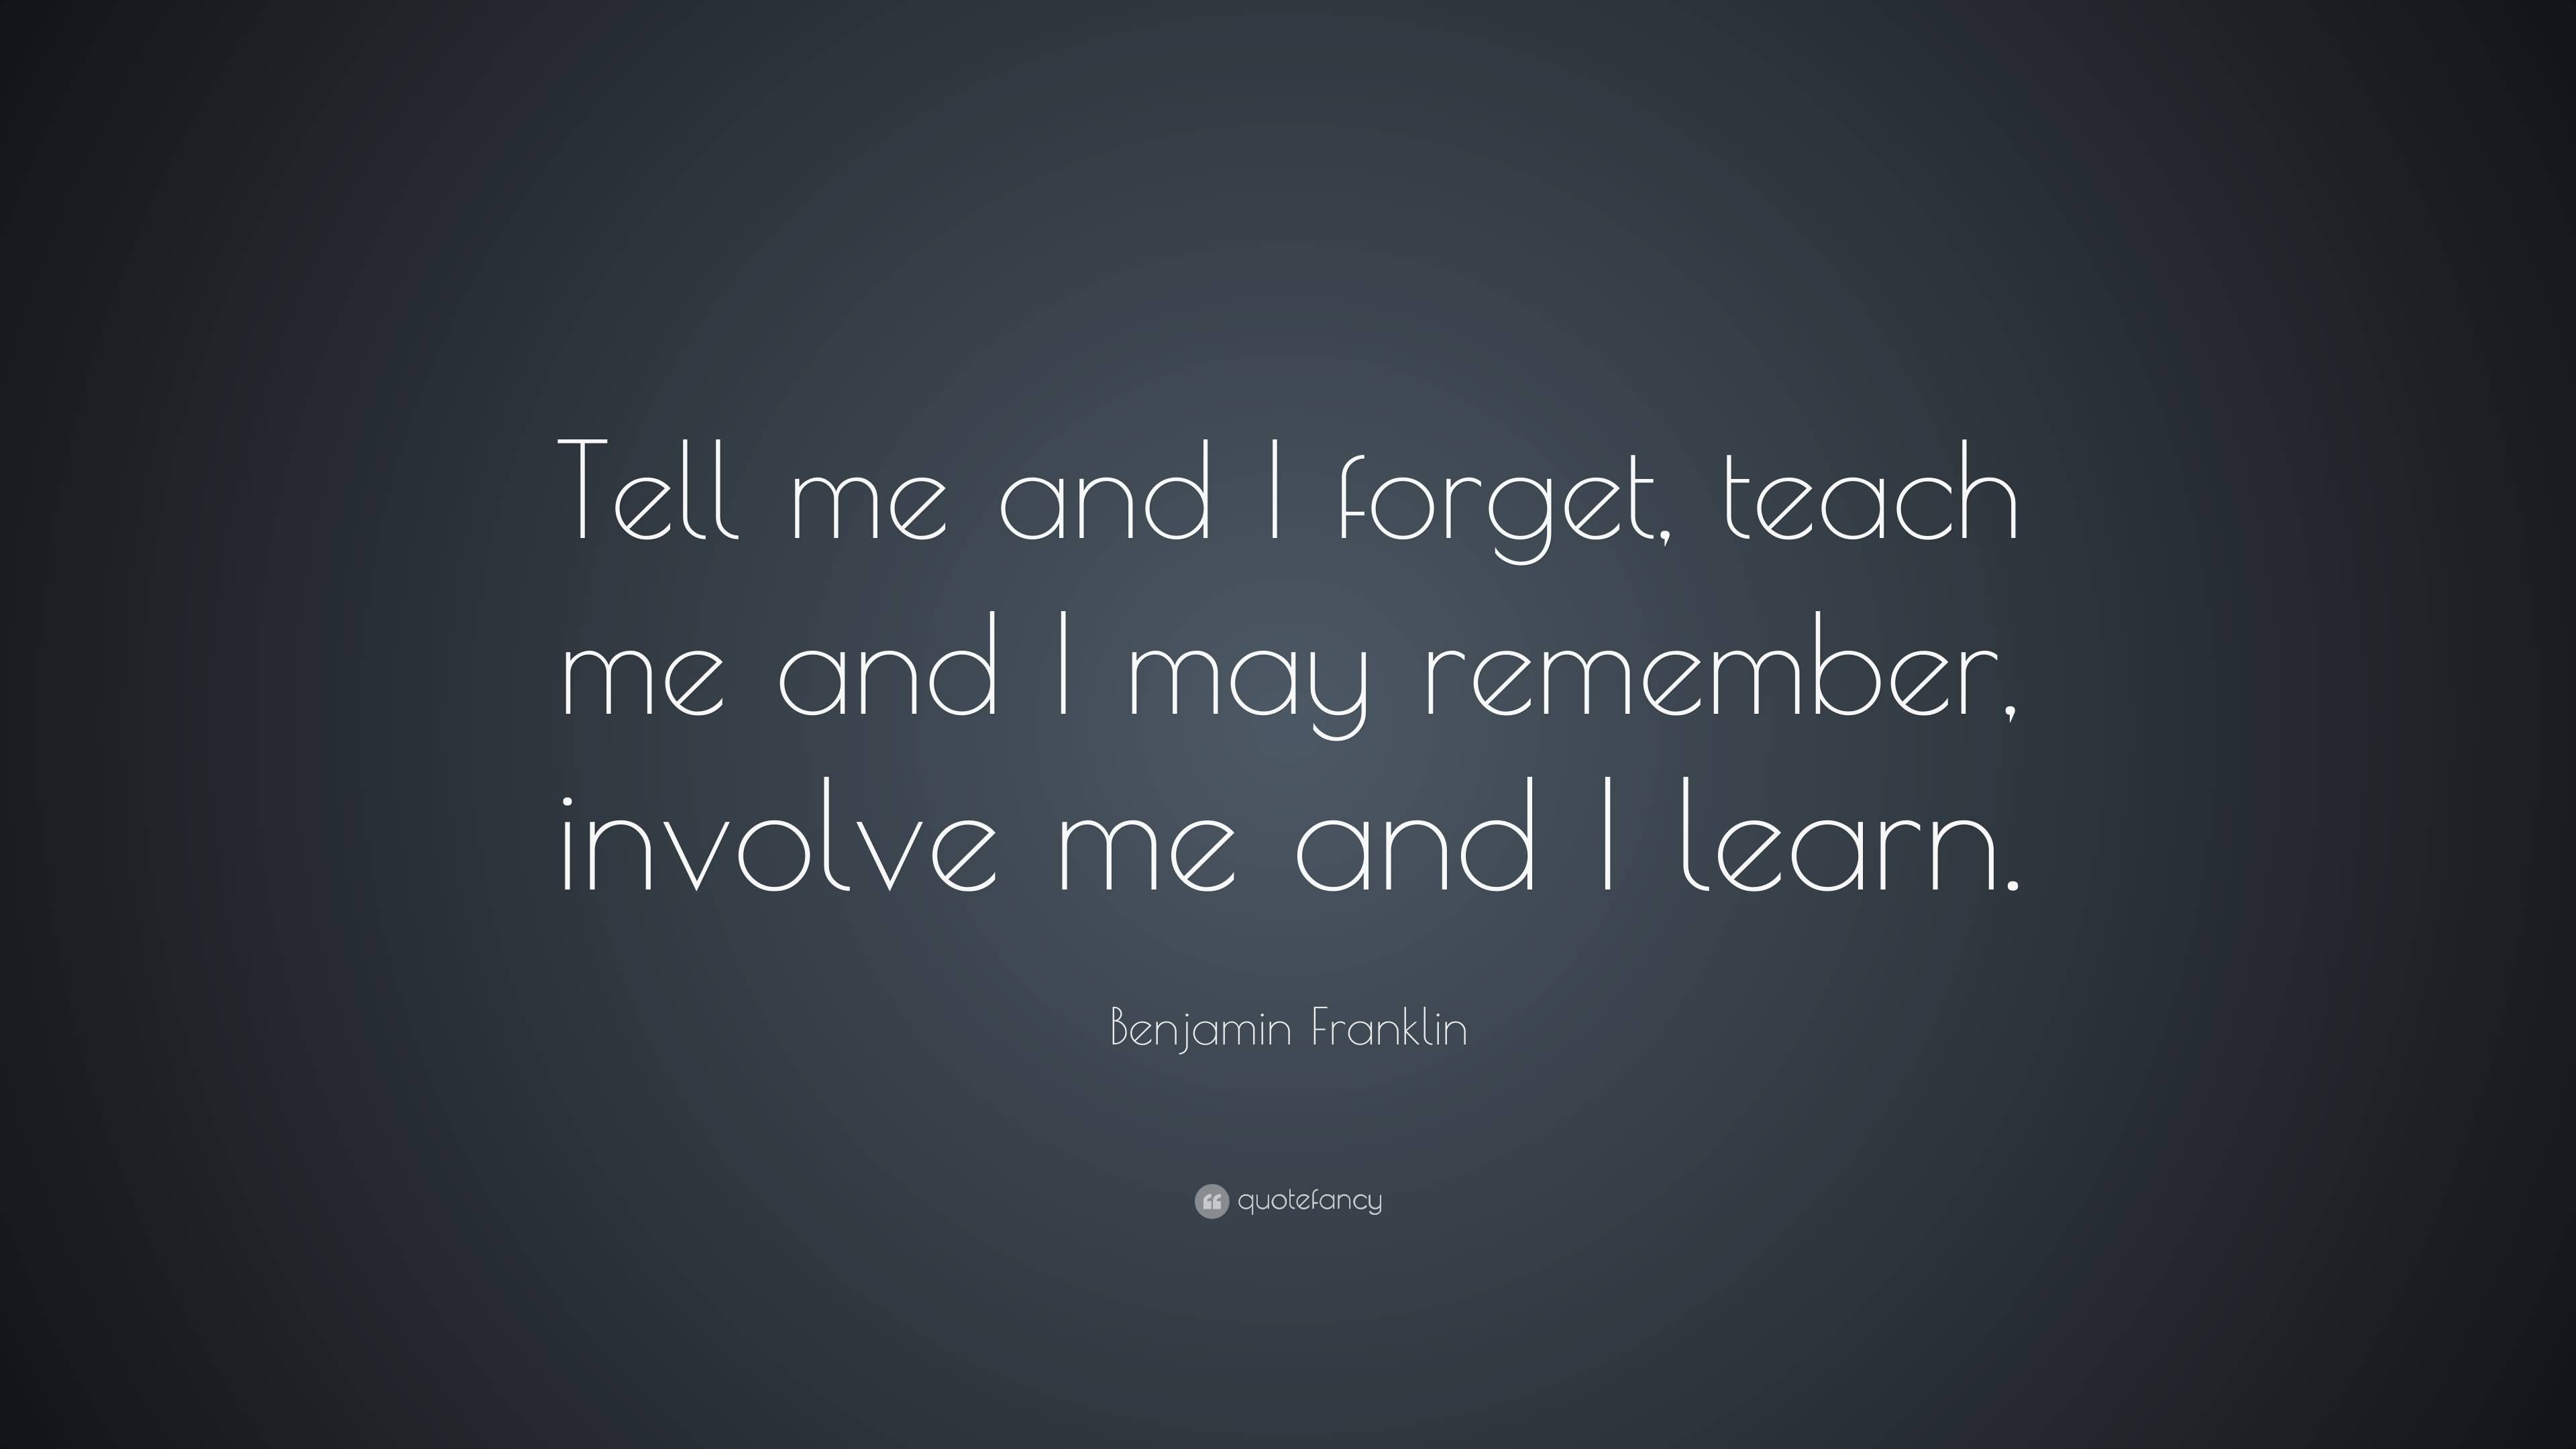 Teach Quotes tell me and i forgot teach me and i may remember